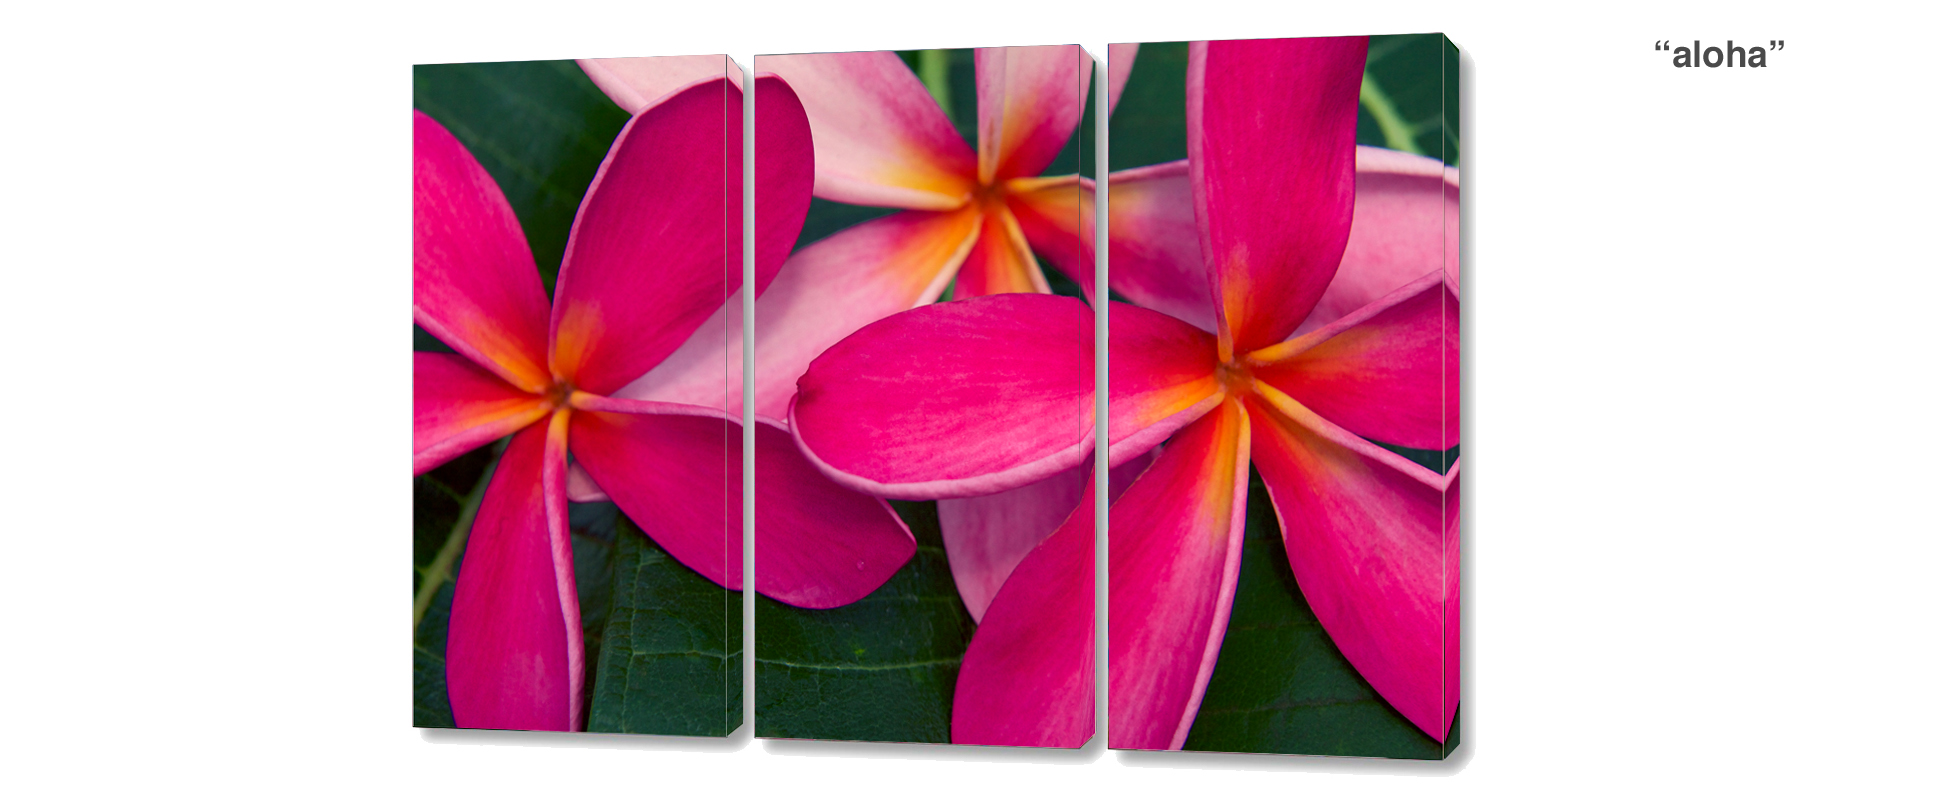 triptych plumeria - 3 Piece limited edition giclee canvas floral wall decor